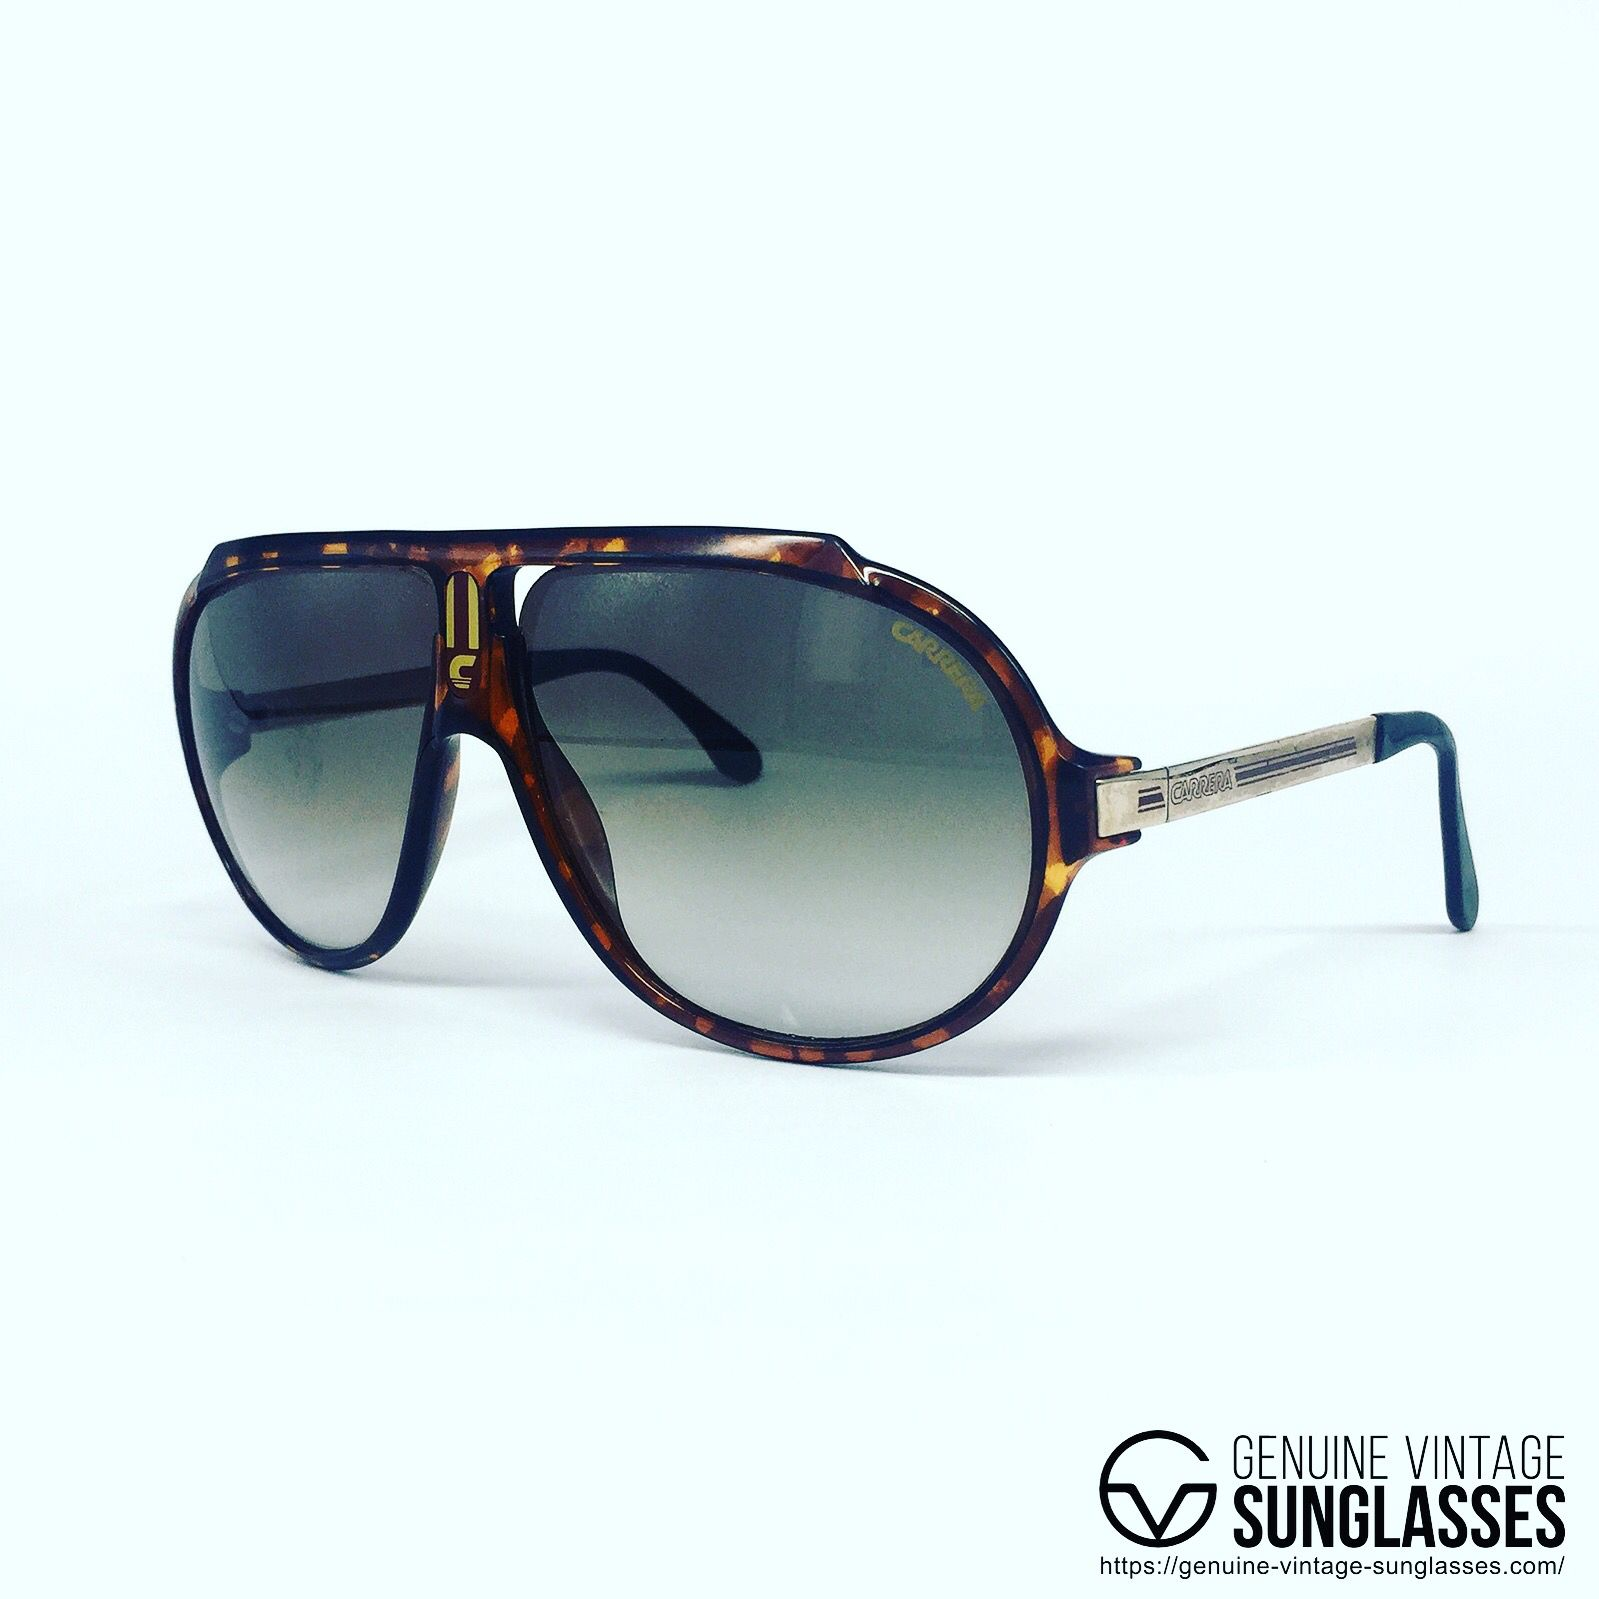 """a28aa67d1c8d2 Famous Carrera 5512 Dark Havana C-vision 400 used in the movie """"Miami Vice""""  now on sale"""